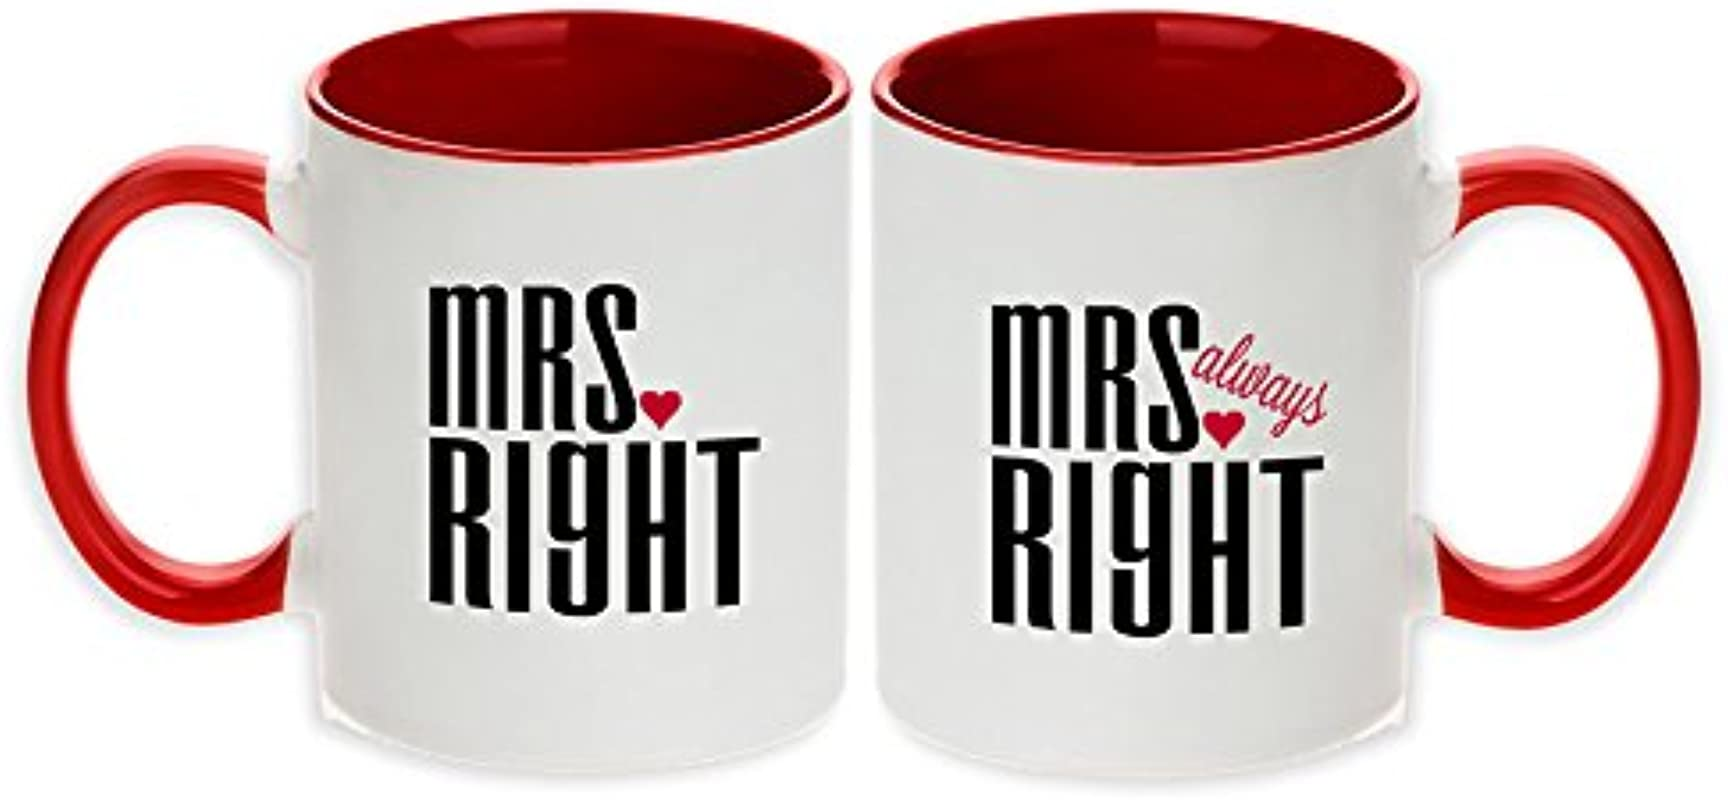 Mrs Right Mrs Always Right Unique Pair Mugs Red Set Of 2pcs